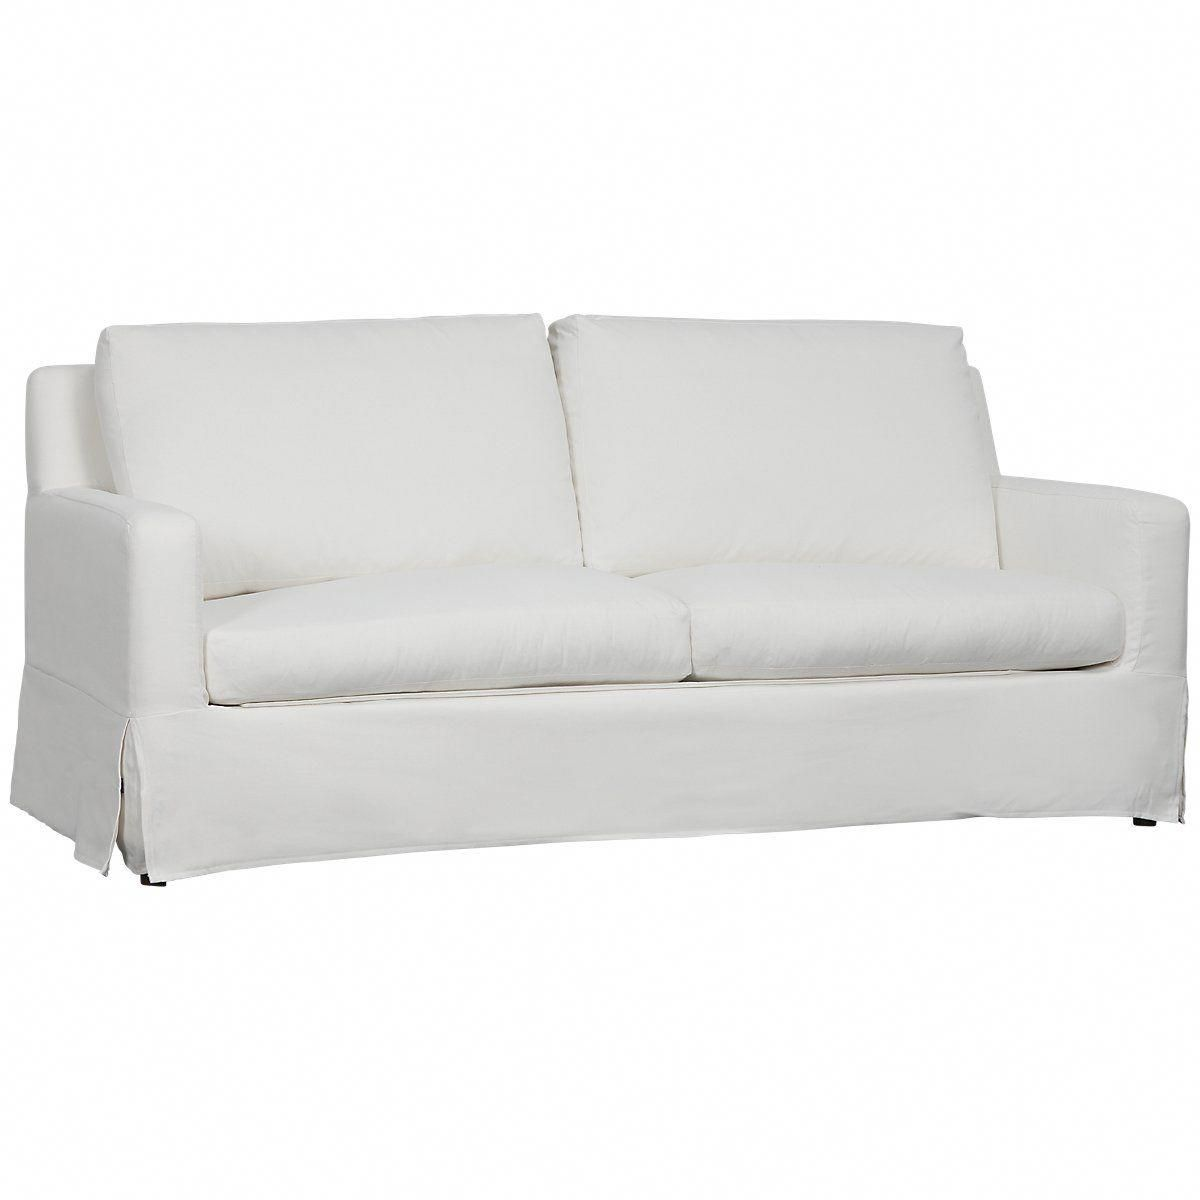 Sofa Foam Meaning The Bree Memory Foam Sleeper Gives New Meaning To Classic Design